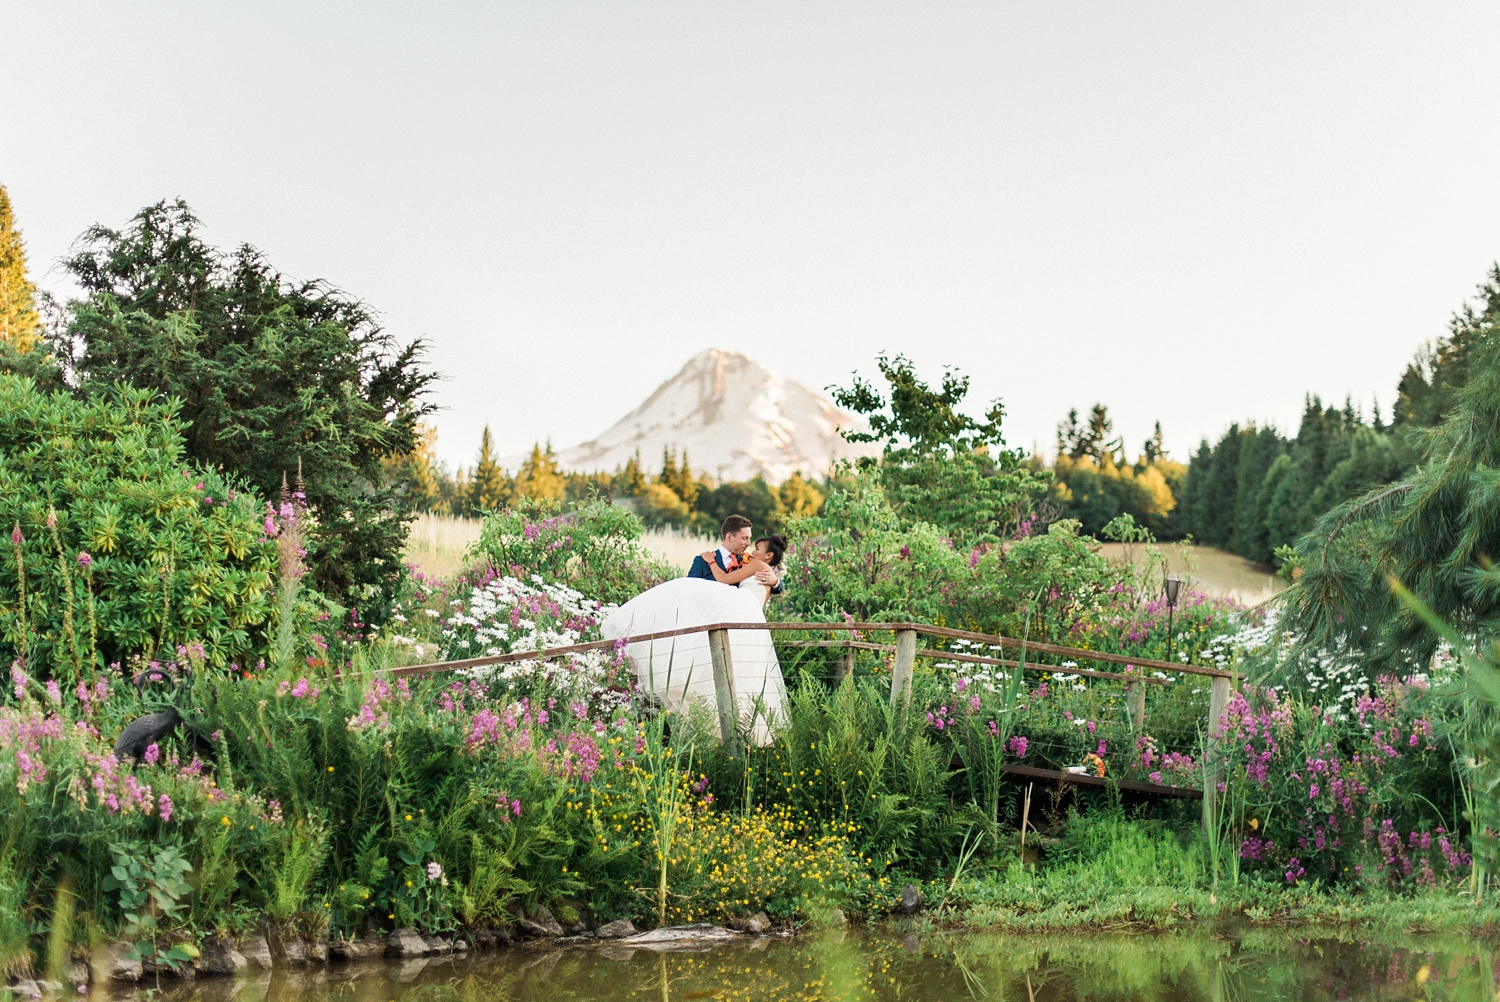 mount-hood-bnb-wedding-portland-oregon-sokhorn-jay-1246_cr.jpg